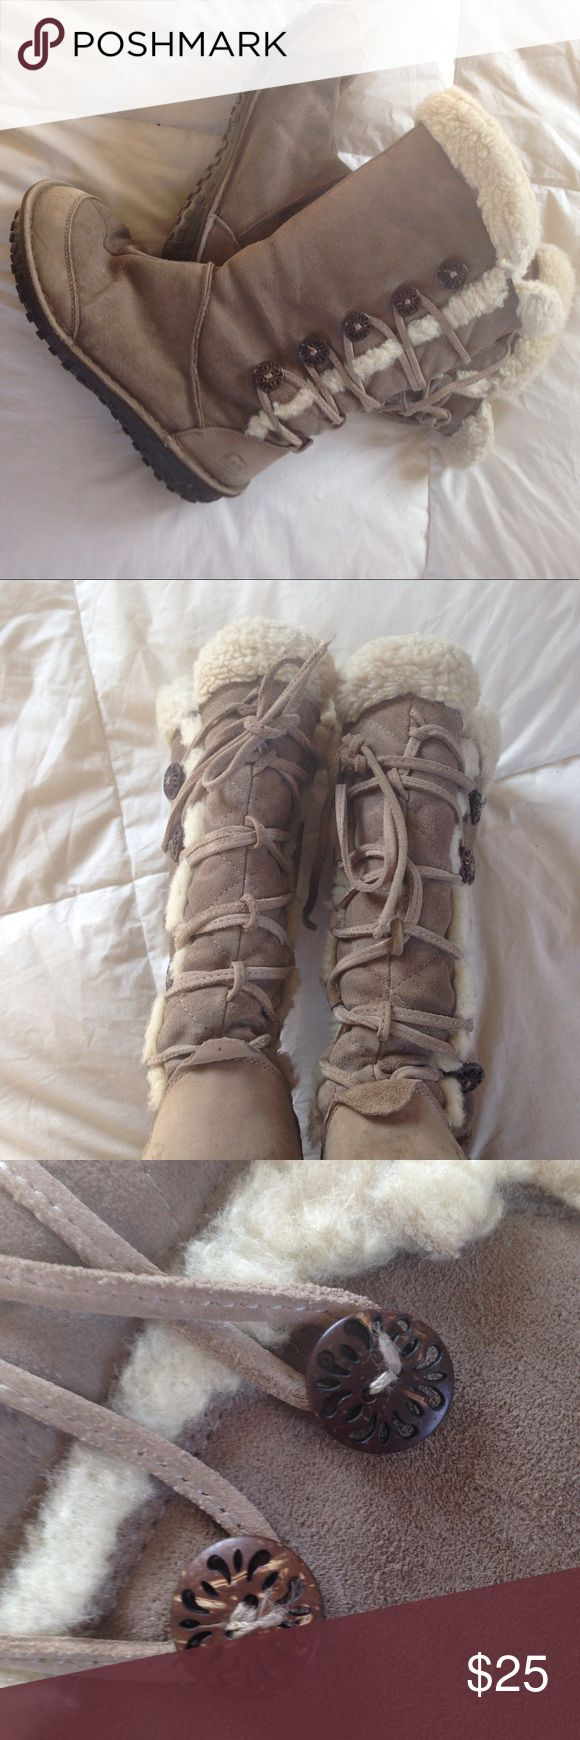 Sorel winter boots Sorel snow boots in cream. Great winter boot. The size is a 7.5 but they run big even with big wool socks. Used and loved, with plenty life left. Sorel Shoes Winter & Rain Boots